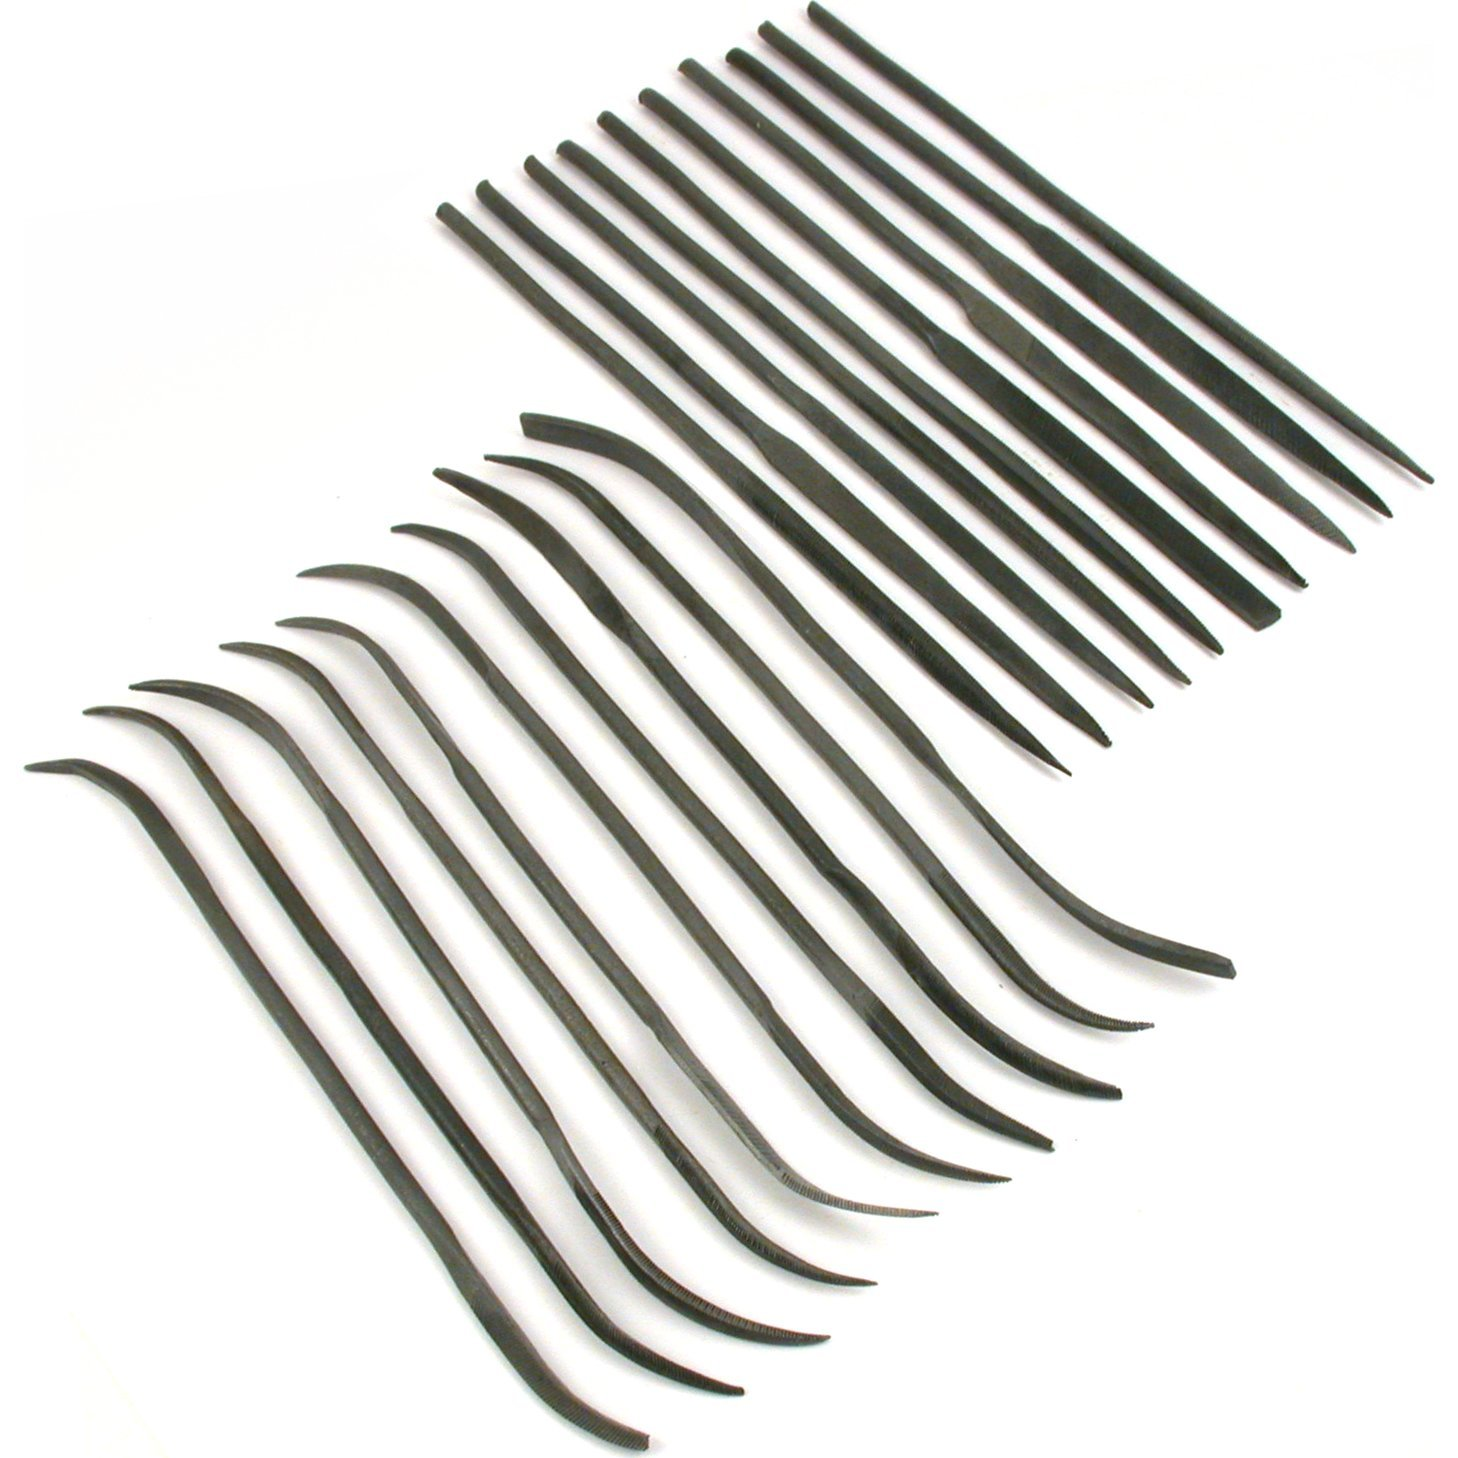 20 Needle Riffler Files Perfect Model Building Tools by FindingKing (Image #1)